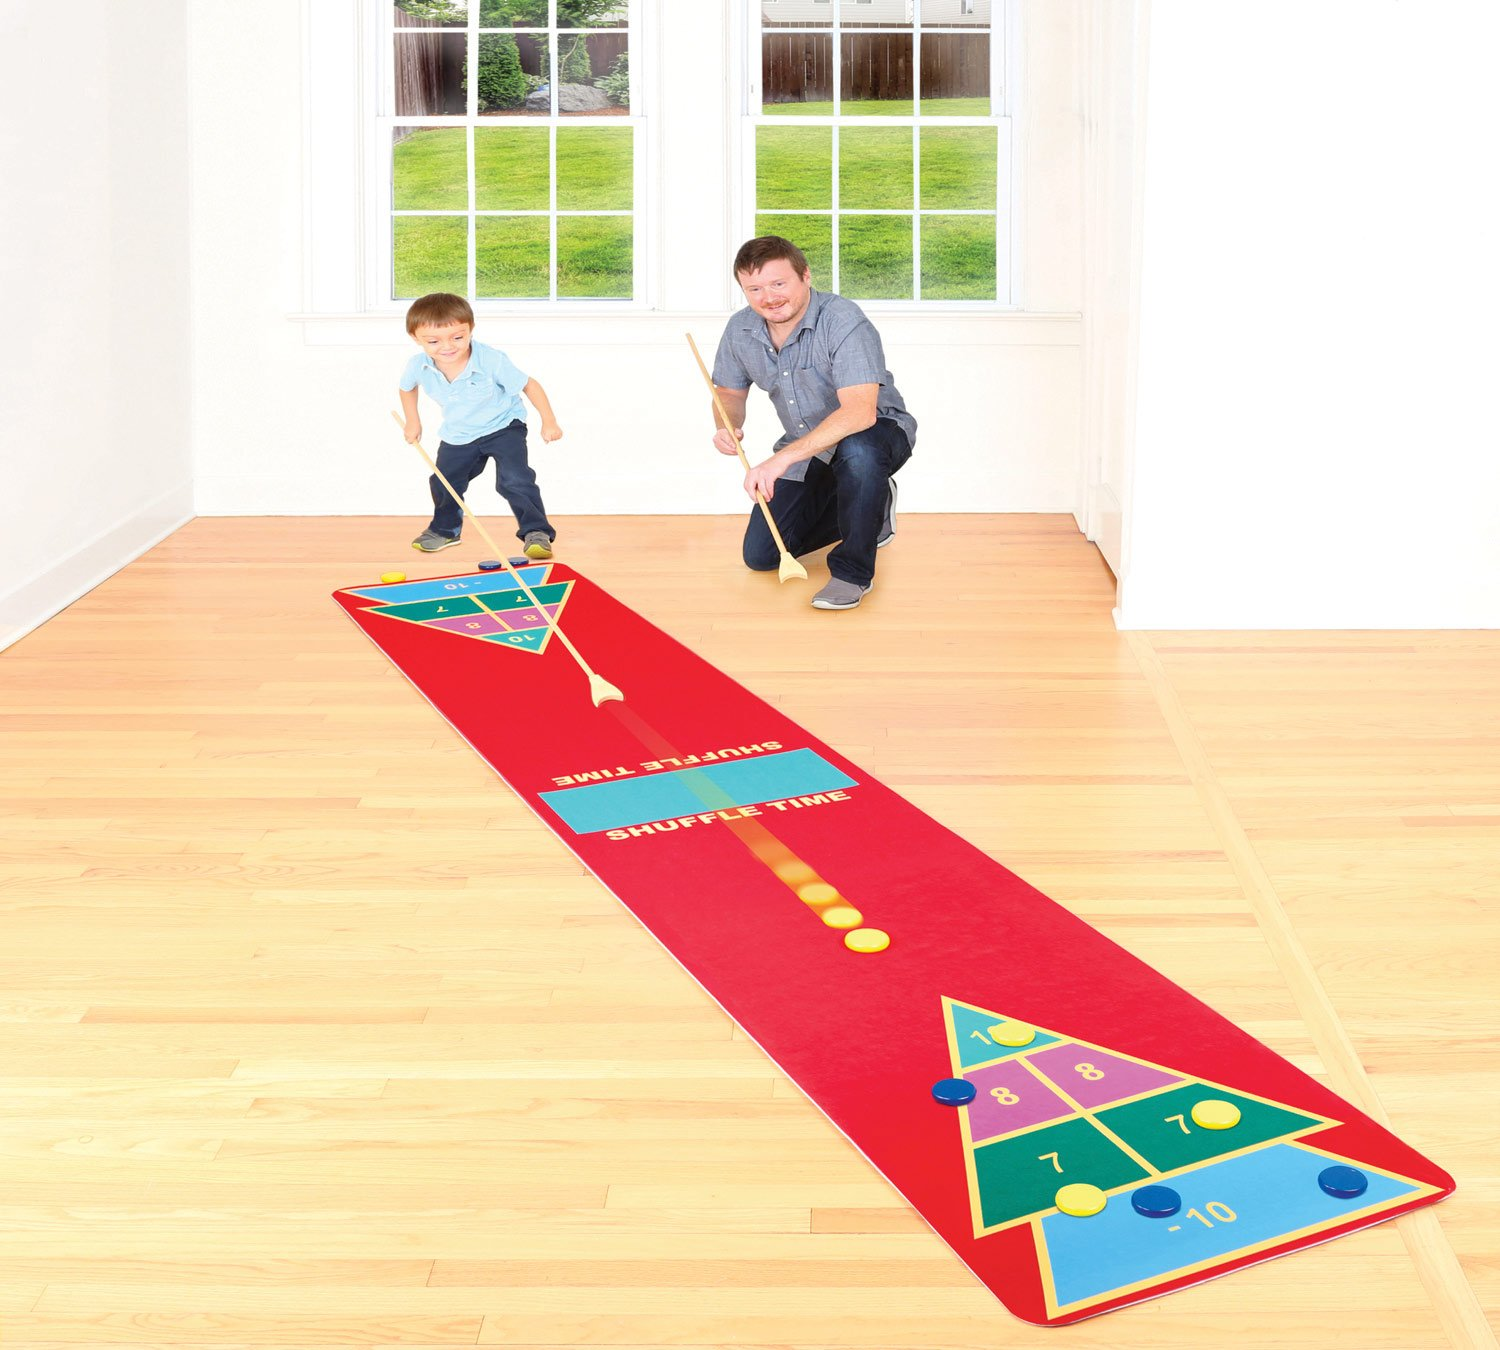 Shuffleboard Rug Game   Classic Shuffle Board Party Game For All Ages   Fun  Floor